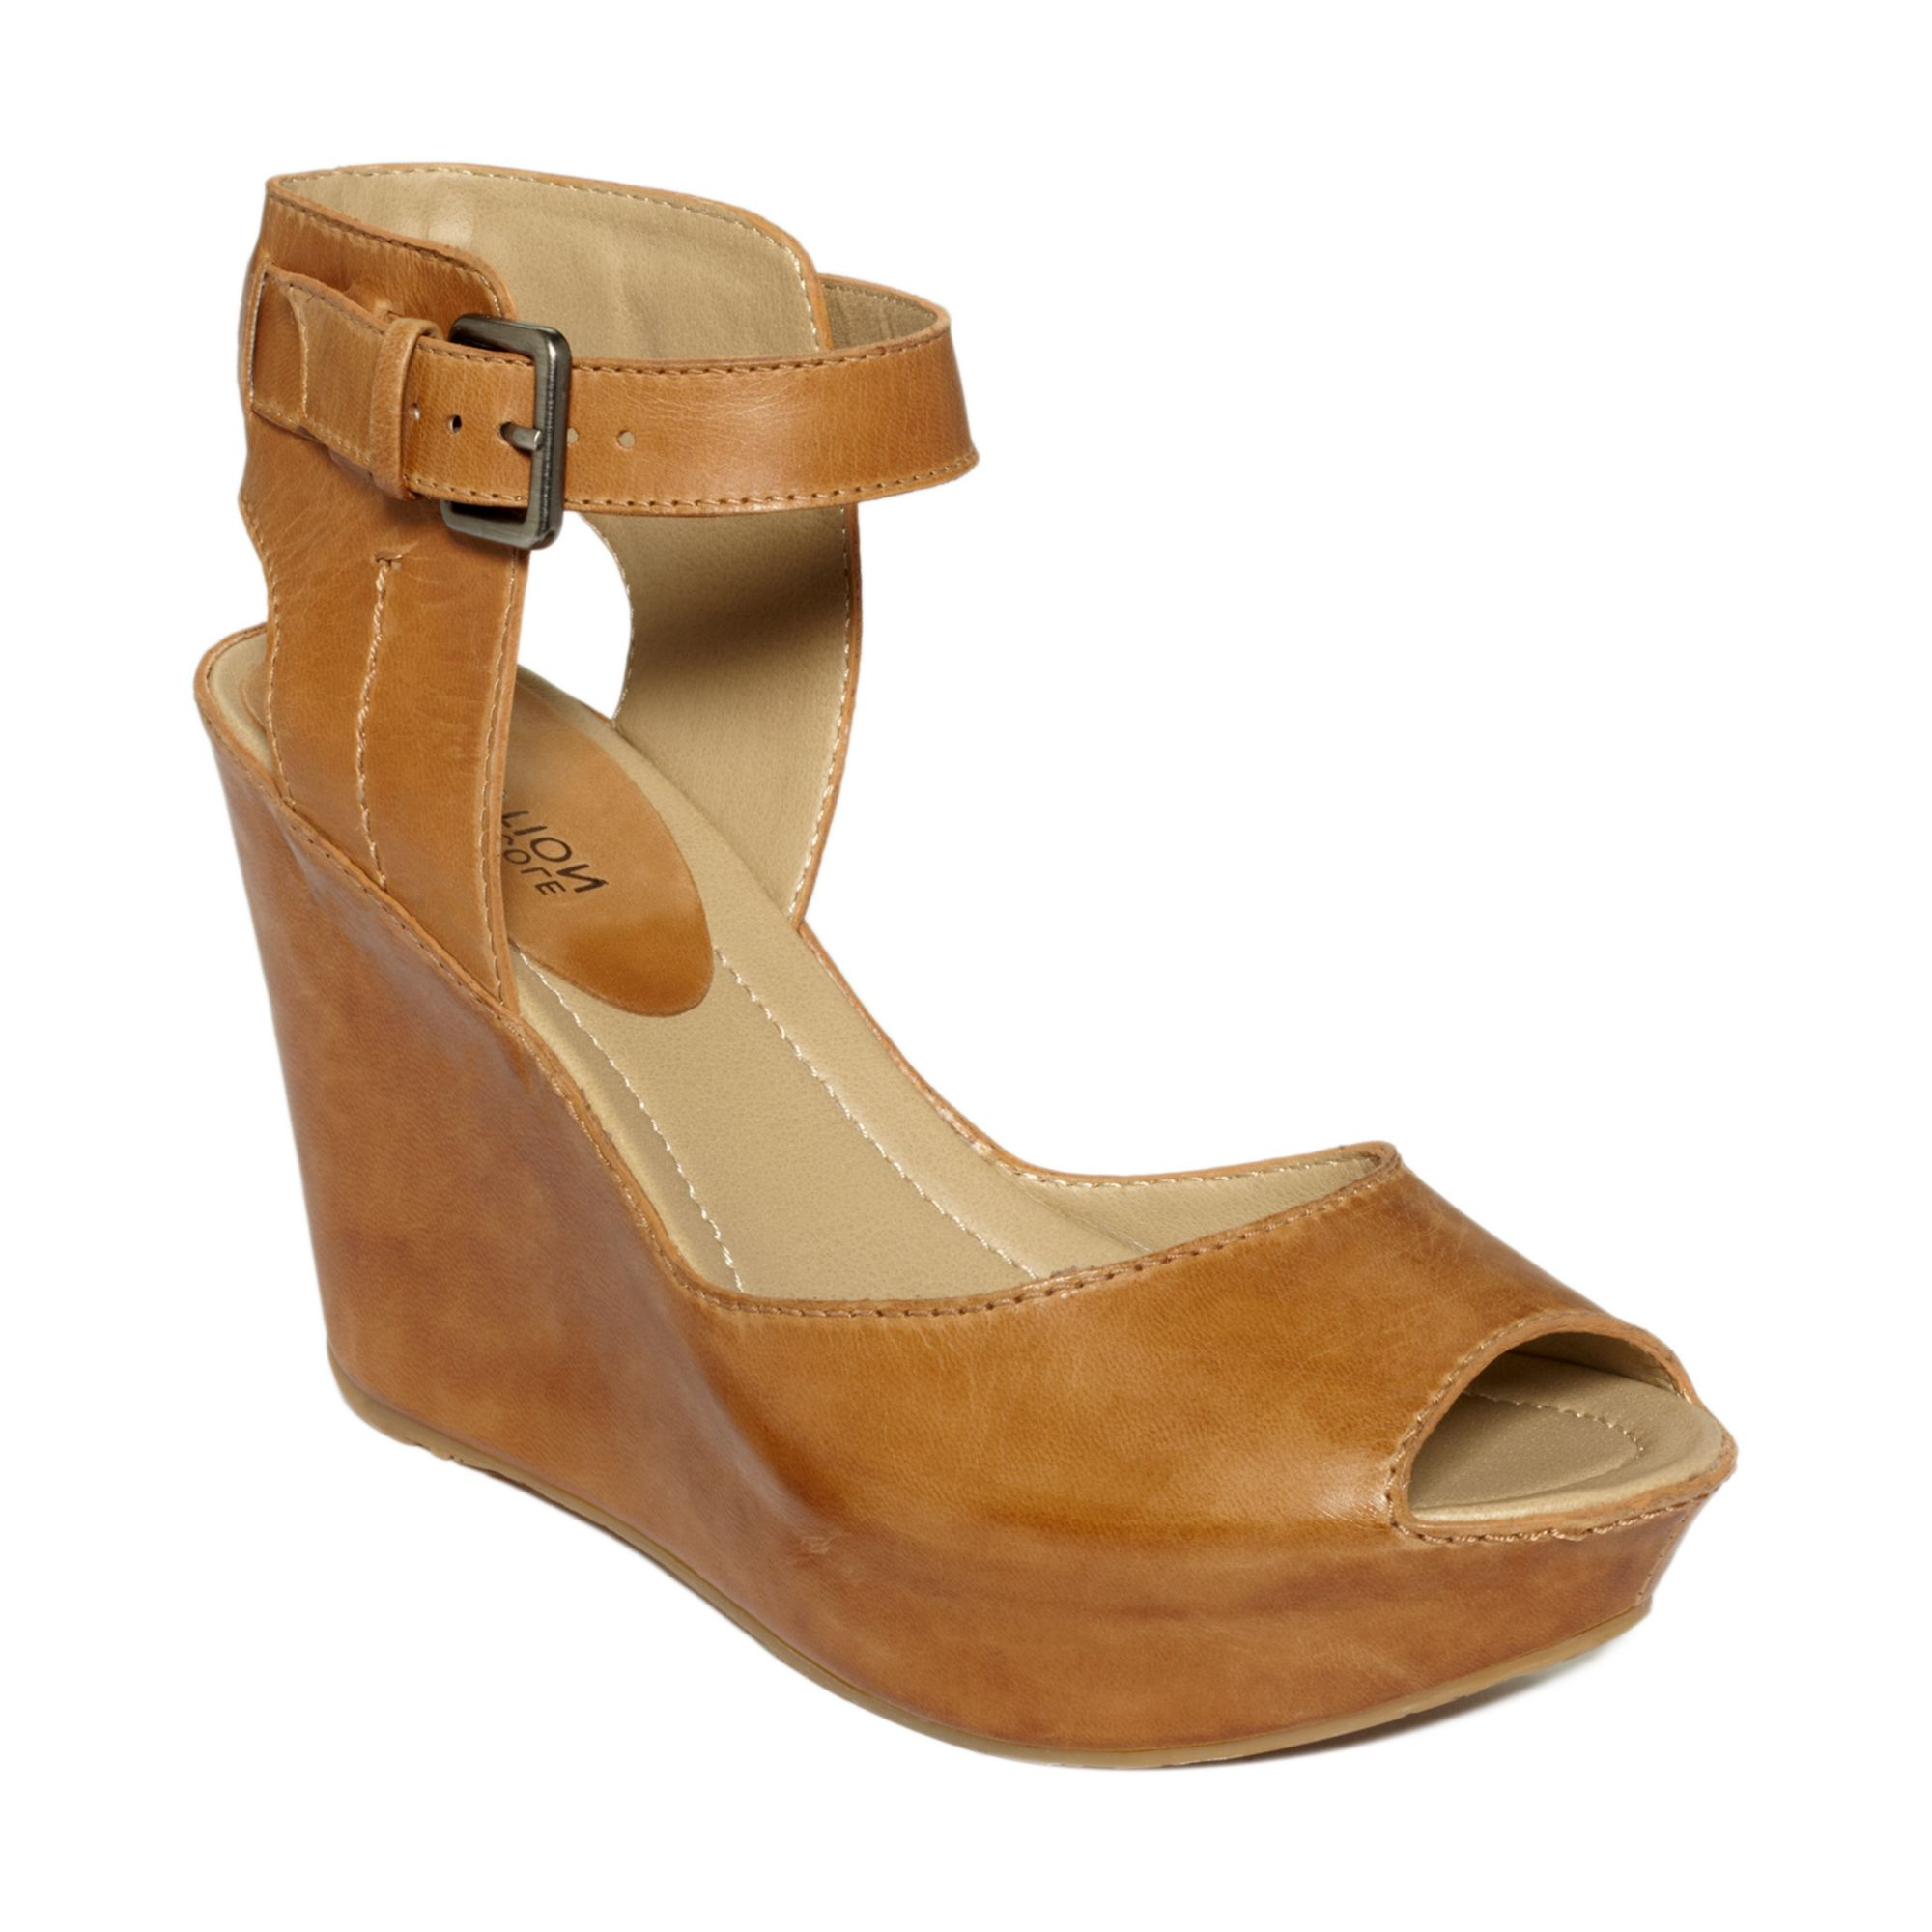 Kenneth Cole Reaction Sole My Heart Wedge Sandals In Brown